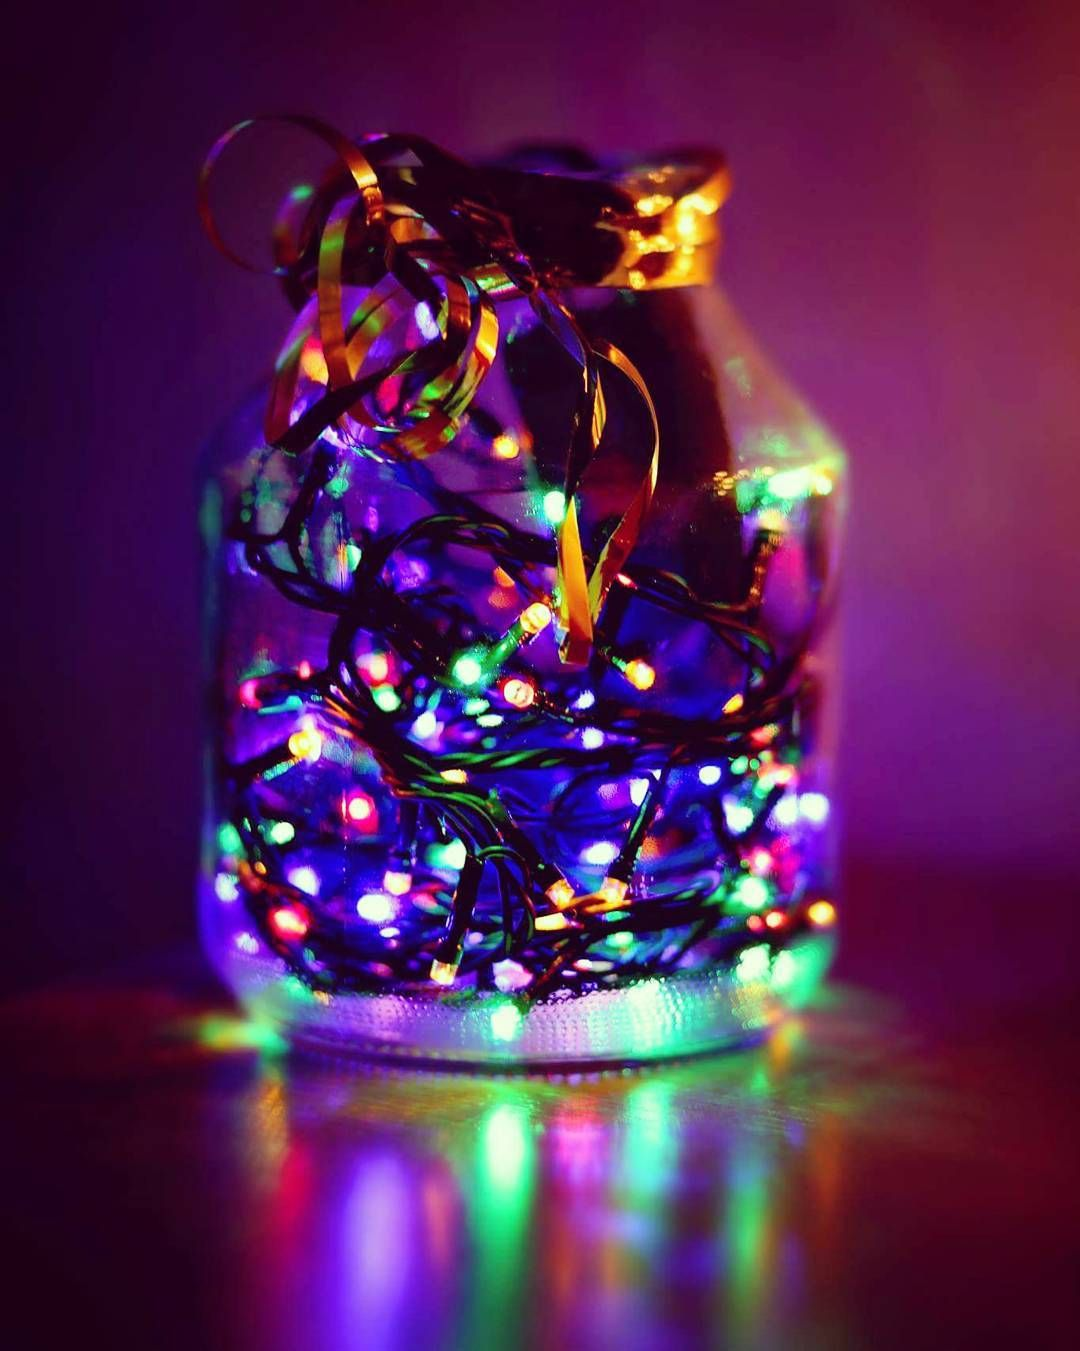 Christmas in a jar  #christmas #winter #favoriteseason #christmastree #lights #fairylights #christmasallyearround #cozy #warm